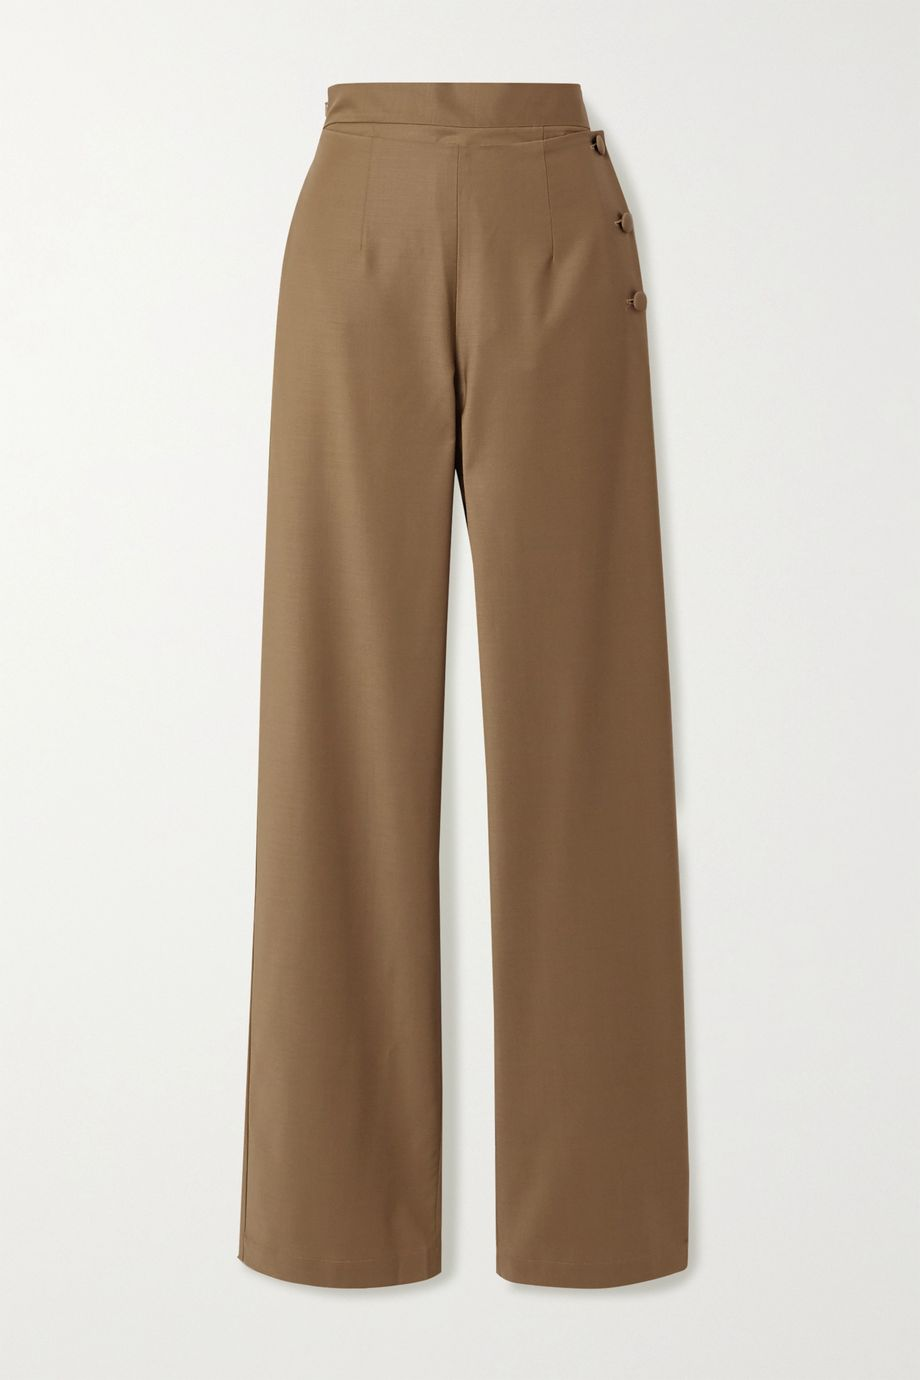 MATERIEL Fold-over stretch wool-blend wide-leg pants